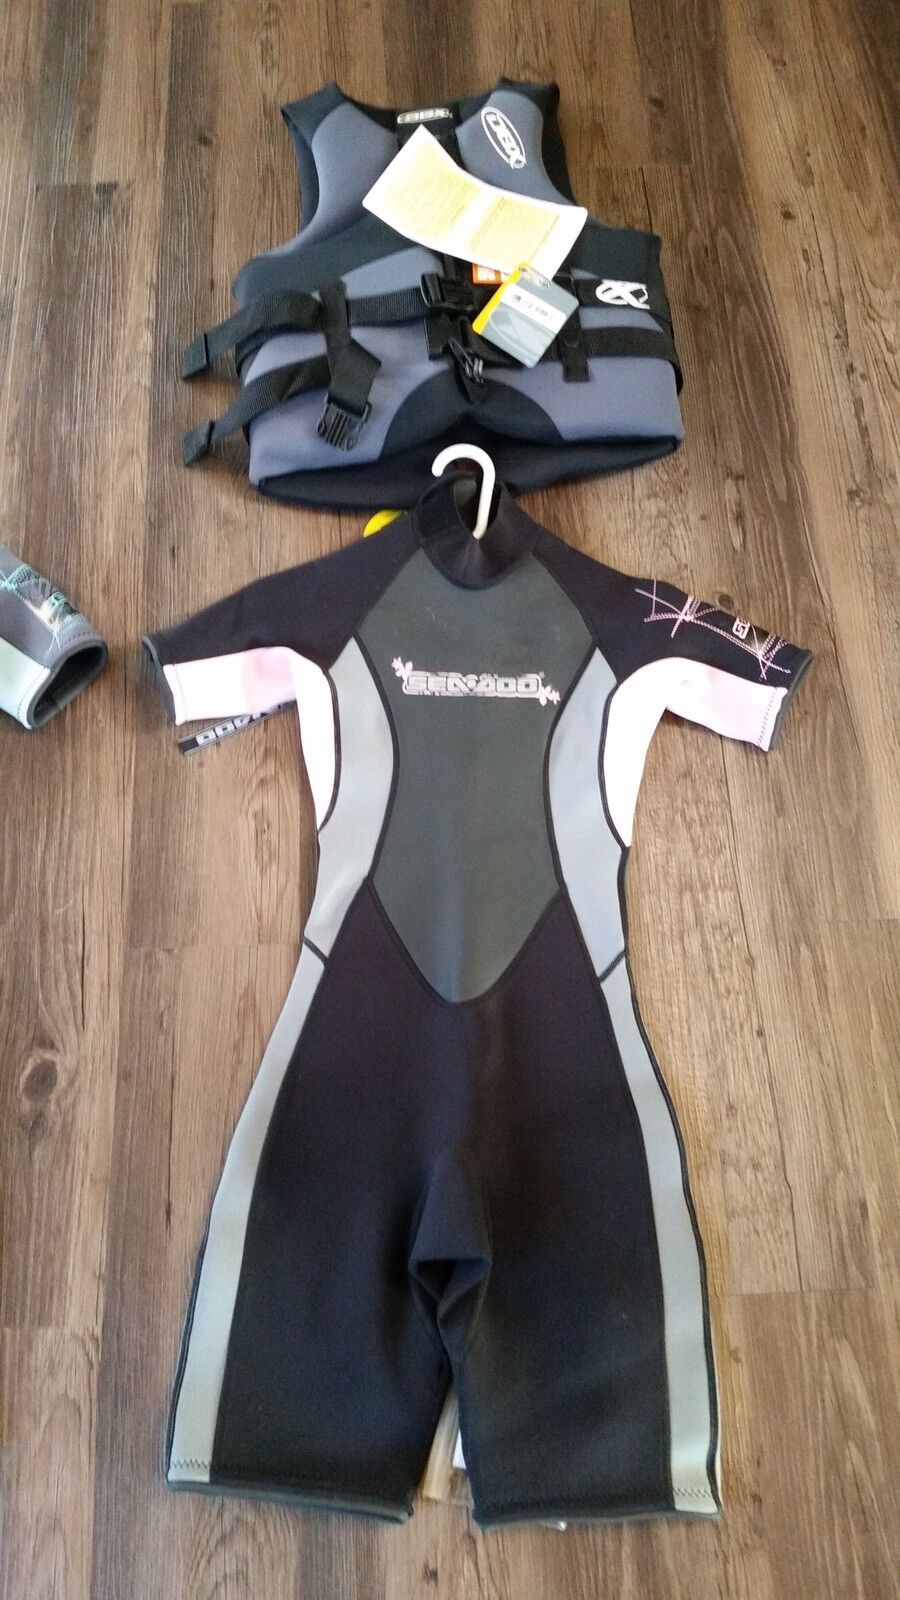 Woman's Seadoo wet suit new and vest. Light Pink